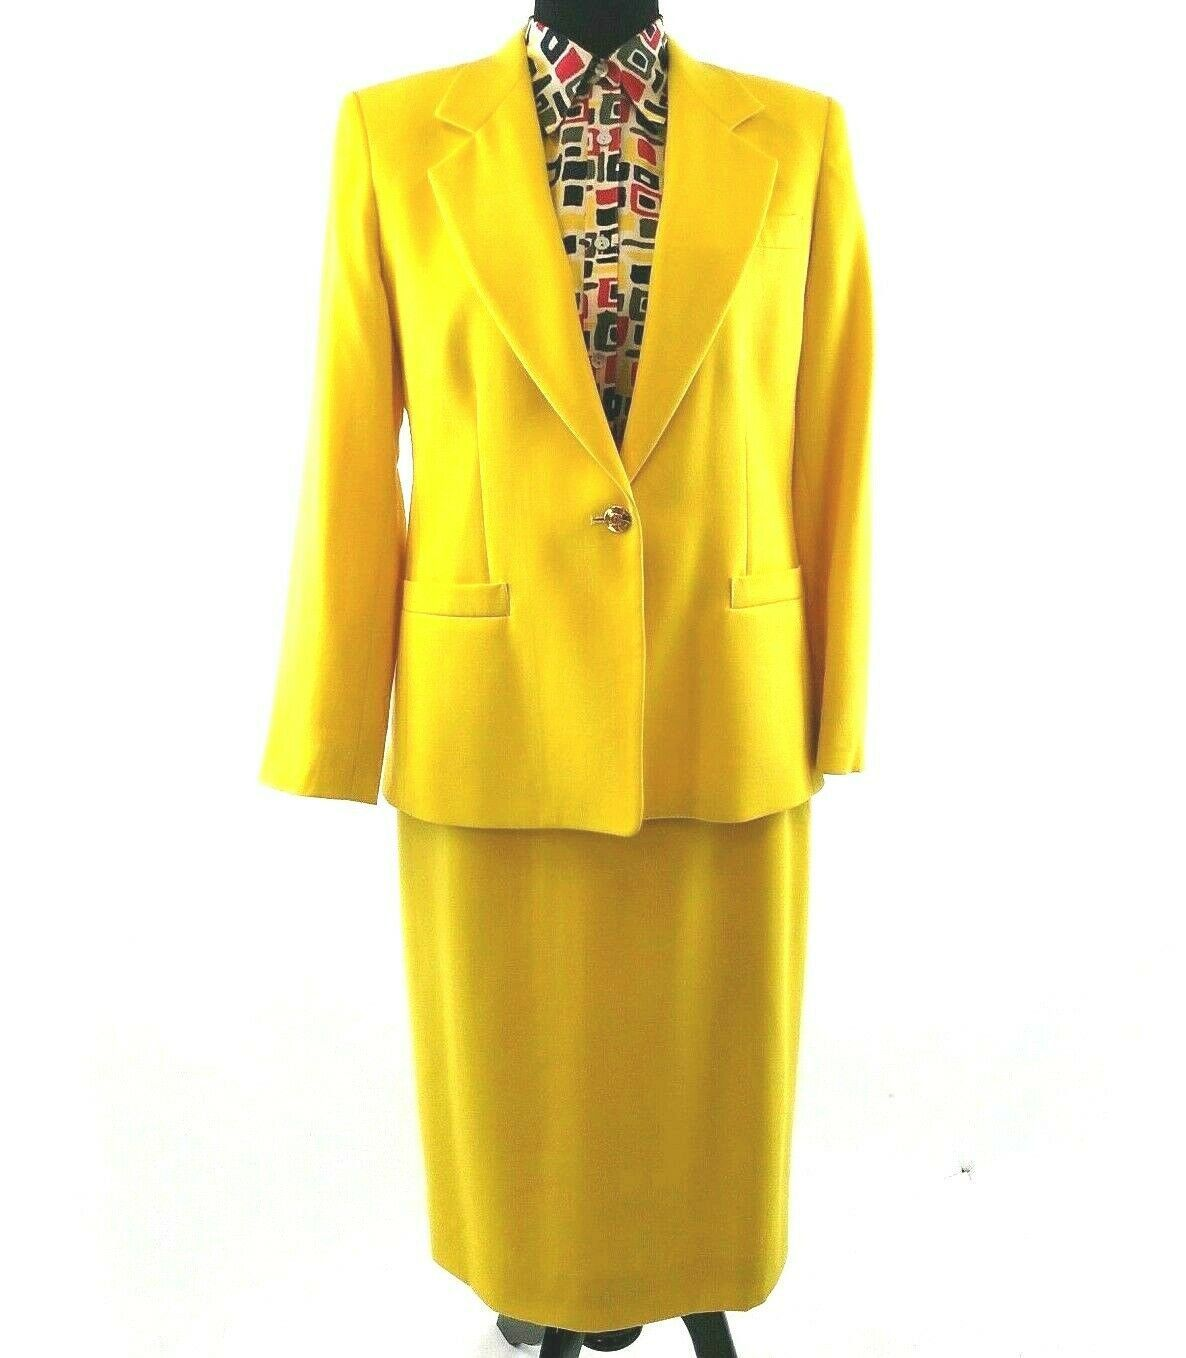 Austin Reed Petite Yellow Skirt Suit Size 10p With Silk Blouse Vtg 80s Yellow Skirt Vintage Clothes Women Skirt Suit